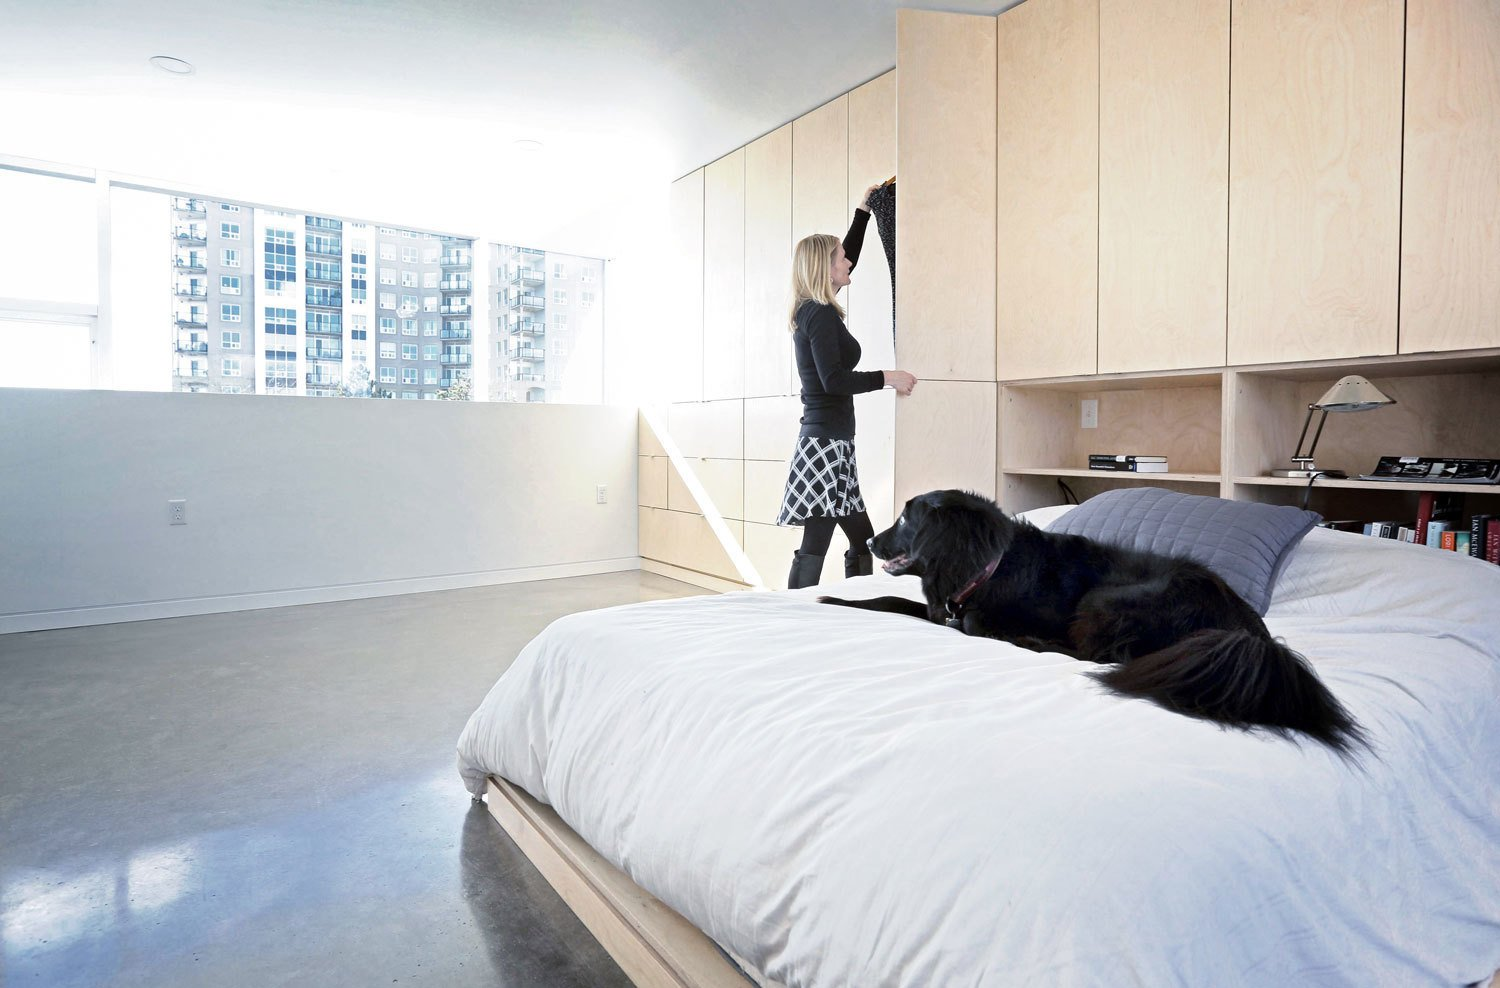 Bedroom, Bed, Storage, Shelves, Concrete, Recessed, and Table Concrete was chosen for both structural and finish material throughout much of the home, for its aesthetic, functional, and budgetary appeal. The polished concrete floors in the bedroom complement the birch bed and cabinetry. The home provides living space for the couple, two kids, one dog, and two cats.  Best Bedroom Table Shelves Recessed Photos from The Architect Next Door